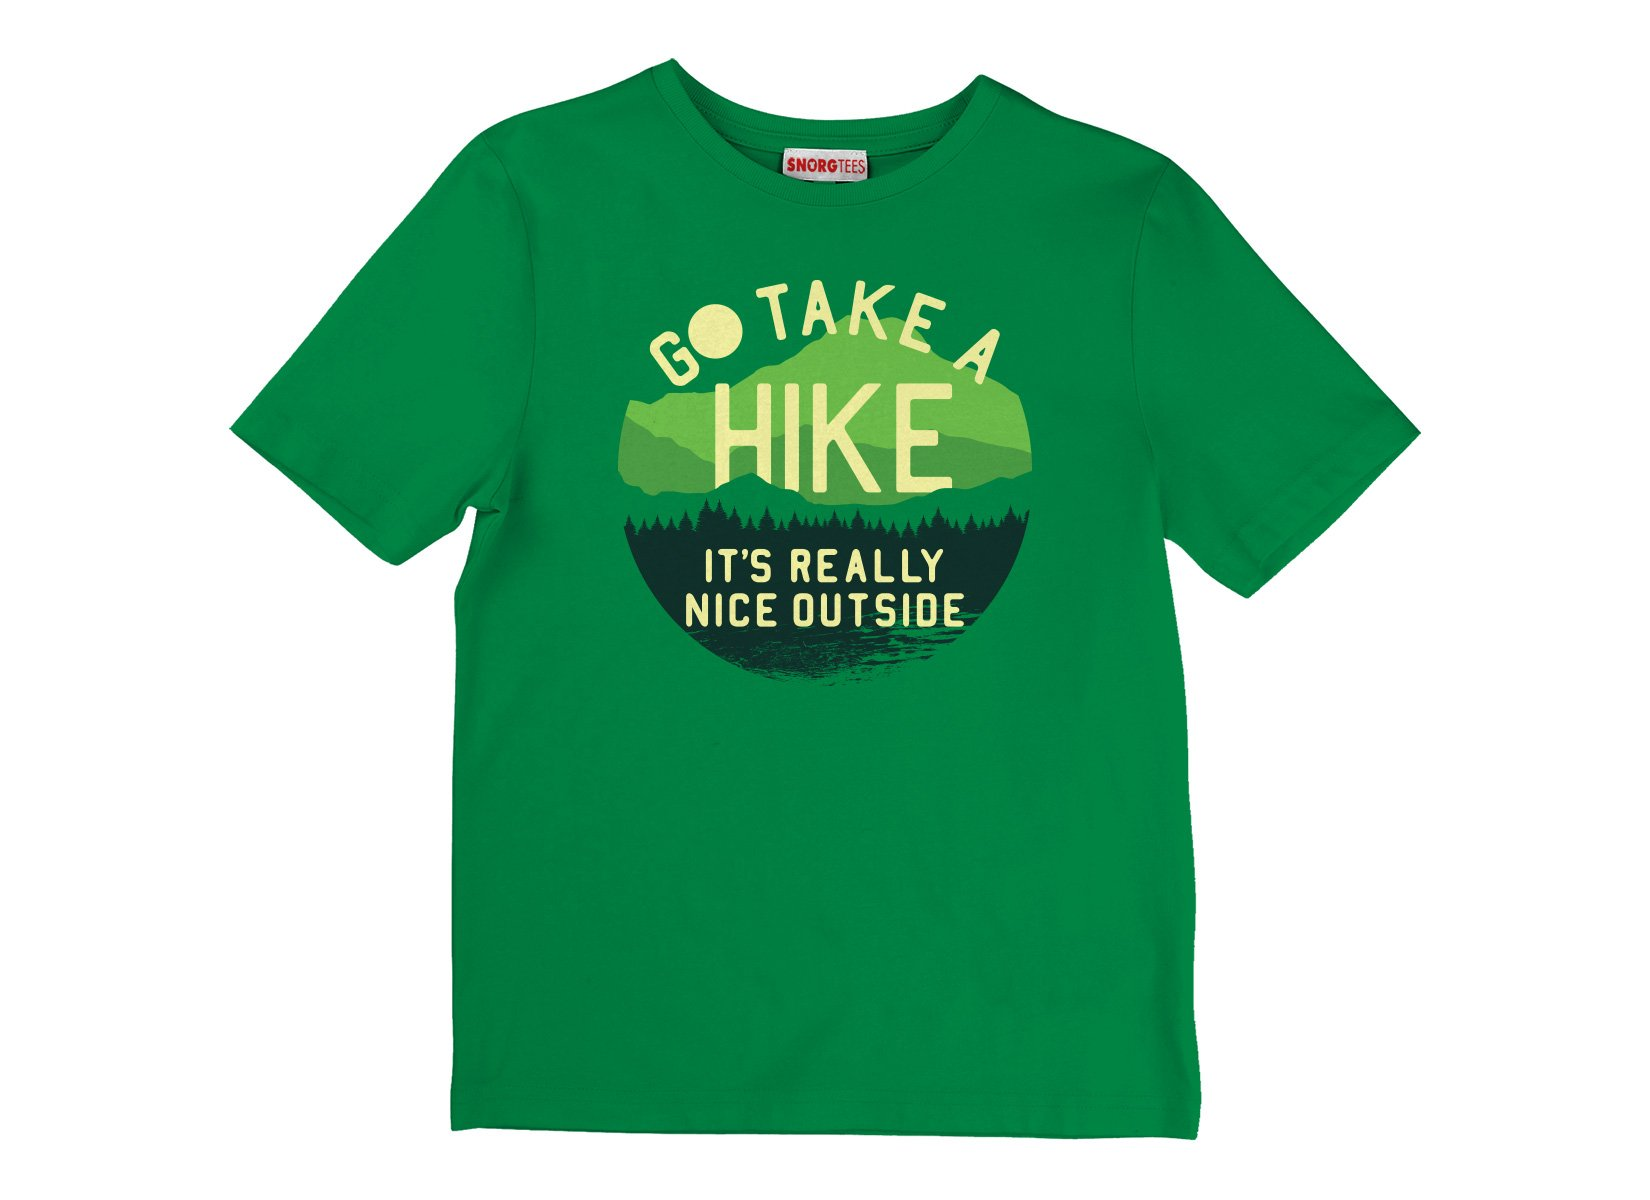 Go Take A Hike on Kids T-Shirt